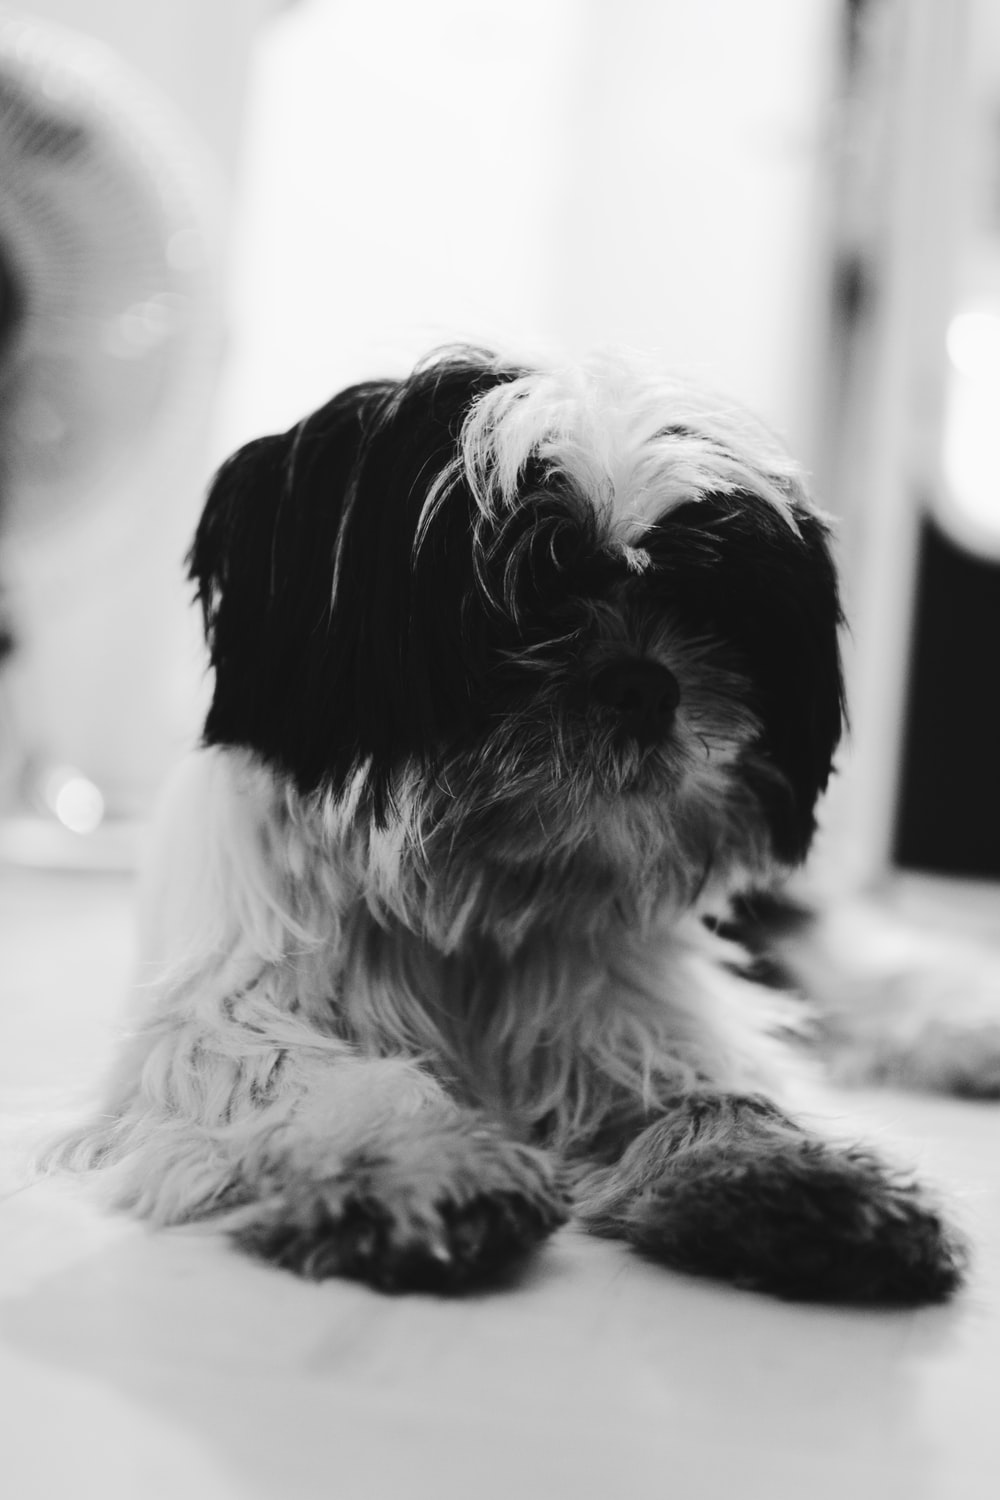 grayscale photograph of dog